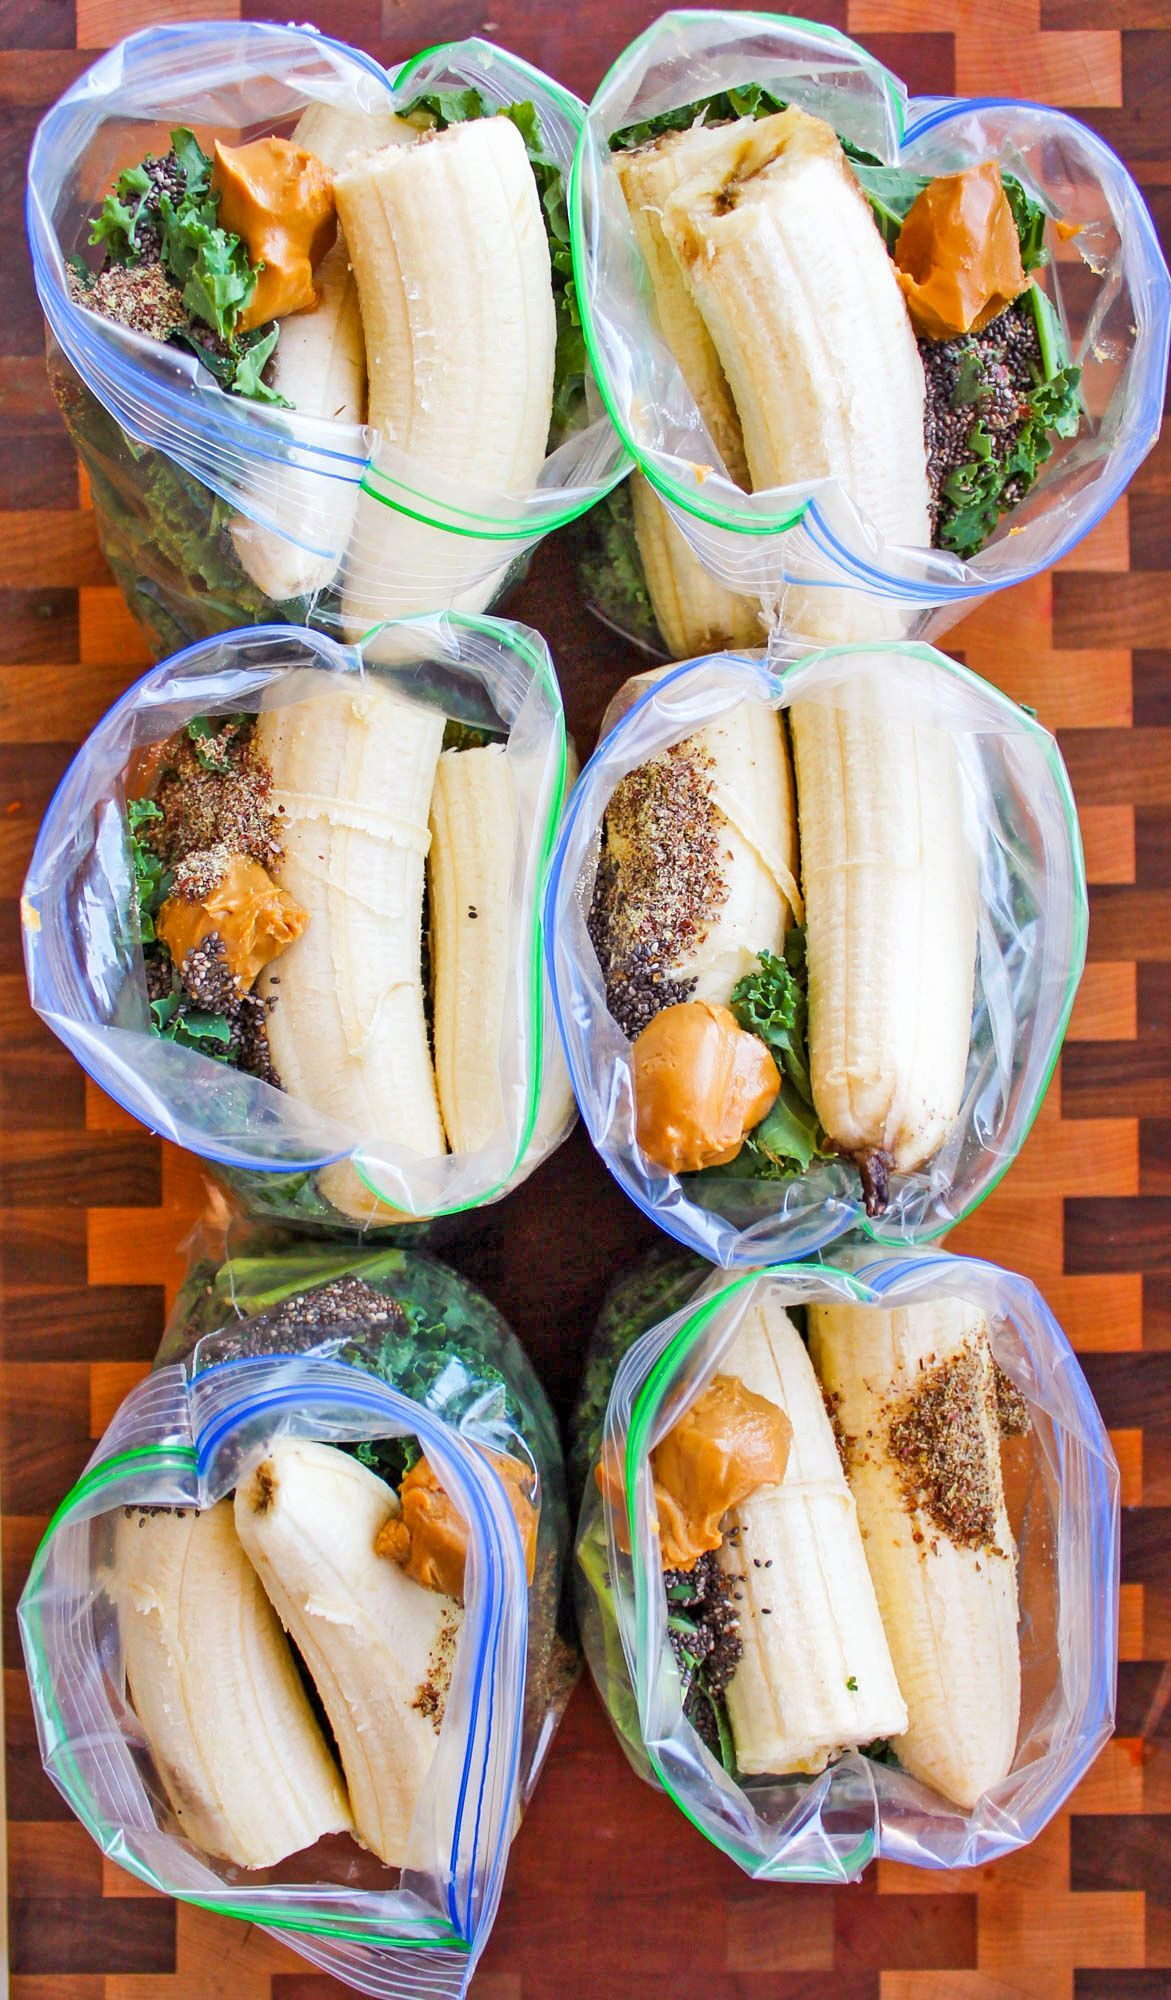 Green Smoothie Freezer Packs This recipe for Best Make-Ahead Peanut Butter Banana Green Smoothie Freezer Packs is a method of freezing smoothie ingredients ahead of time to quickly blend them in the morning. I'm so excited to share this recipe because it's one of my favorite things to make ever. Not kidding – I make this recipe about...This ...